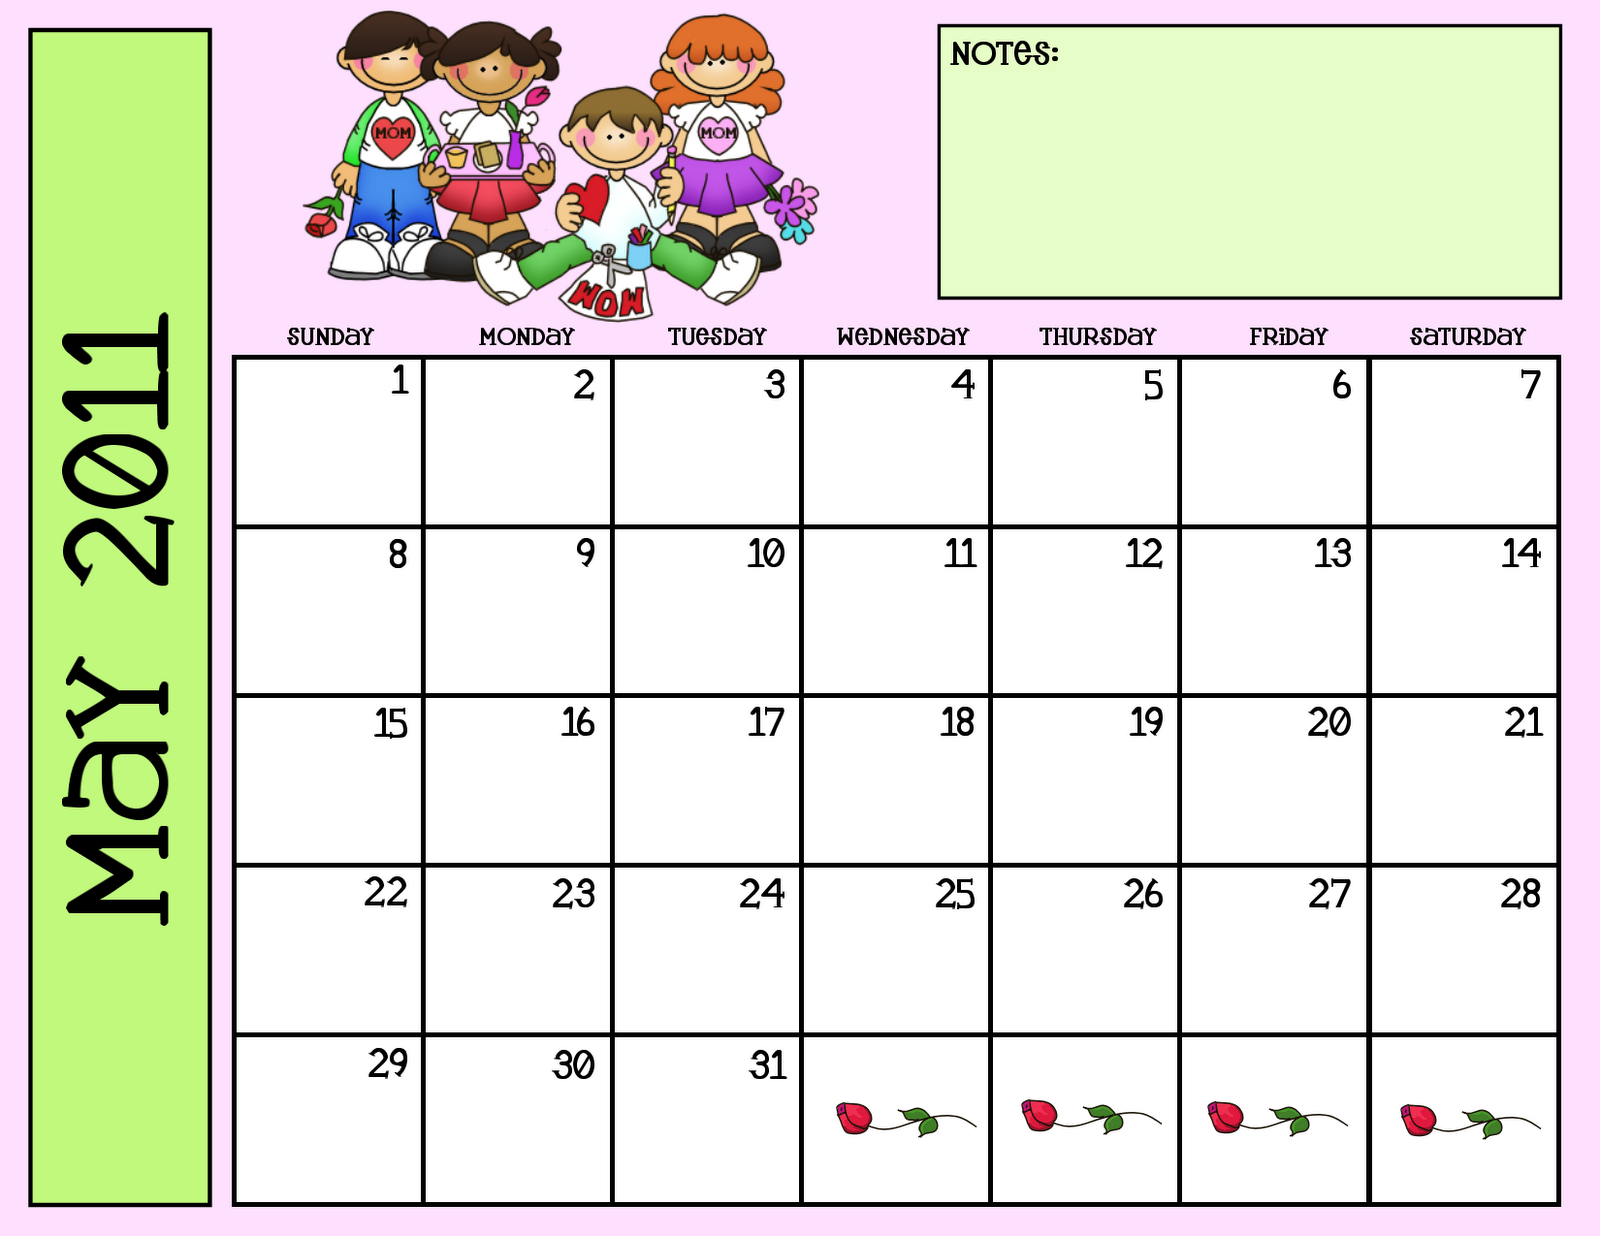 Calendar Printables For Teachers : Calendars for teachers new calendar template site